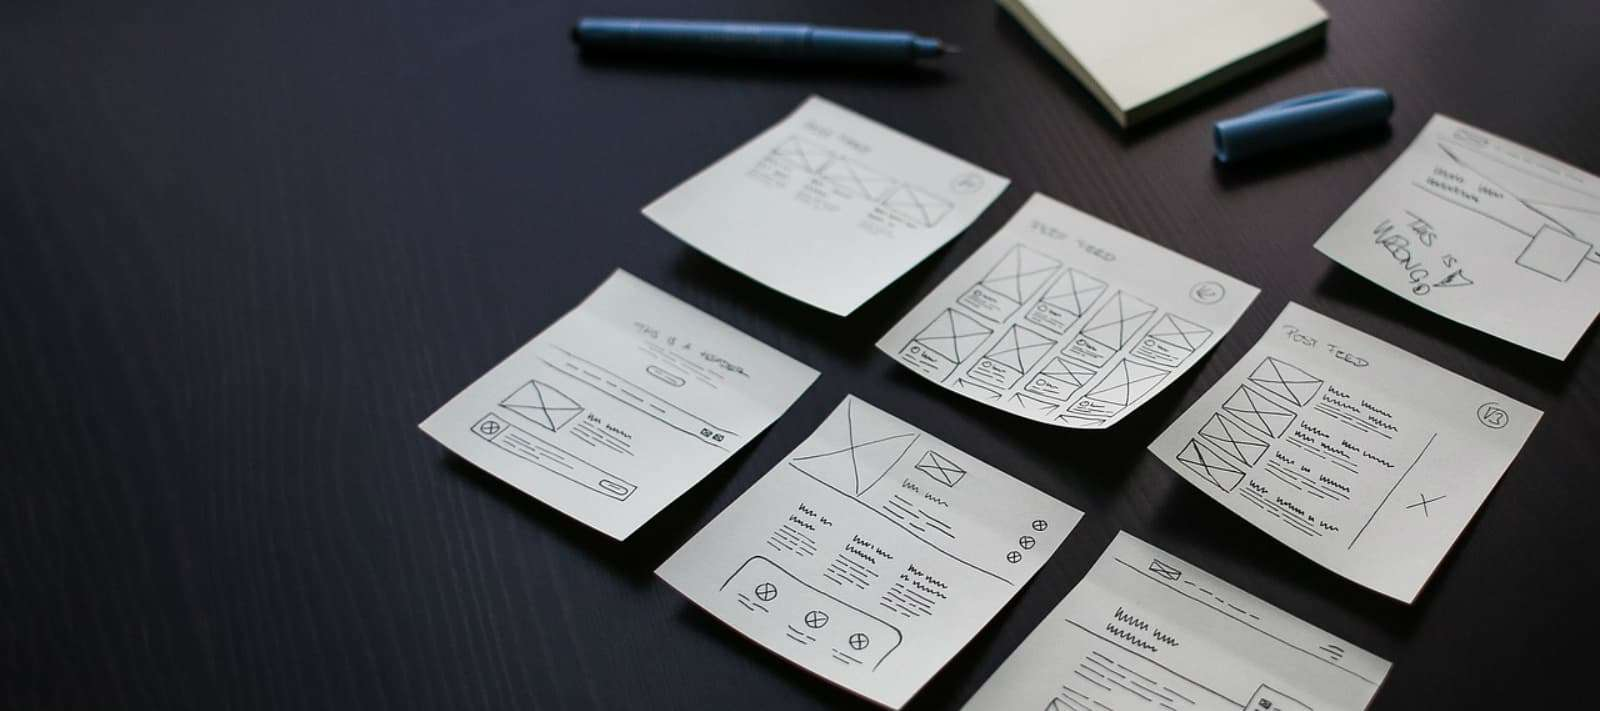 ux-article-img